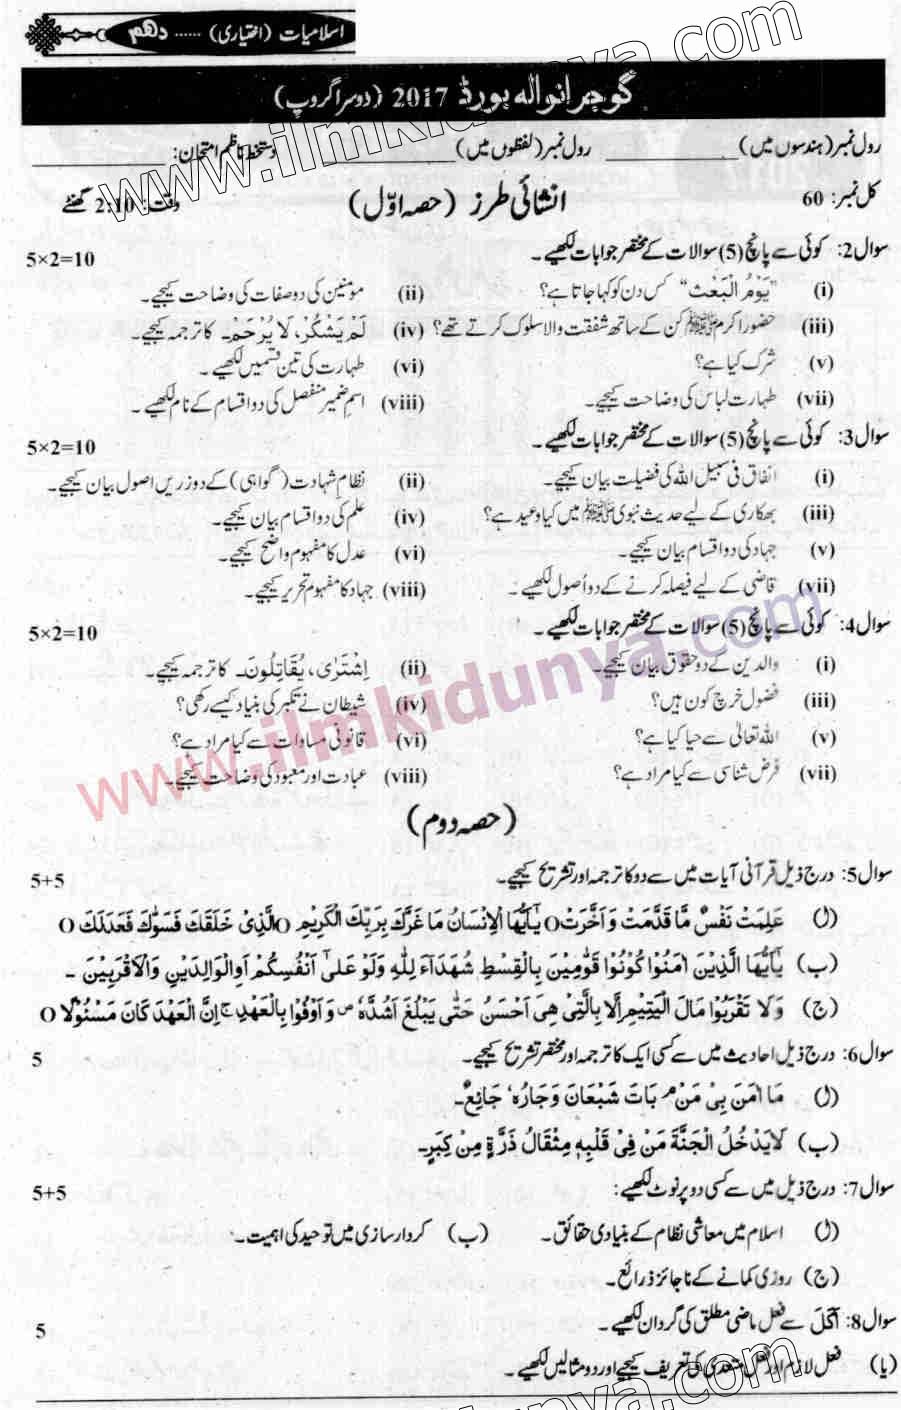 GEOGRAPHY PAPER 2 PAST PAPERS GRADE 12 - Auto Electrical